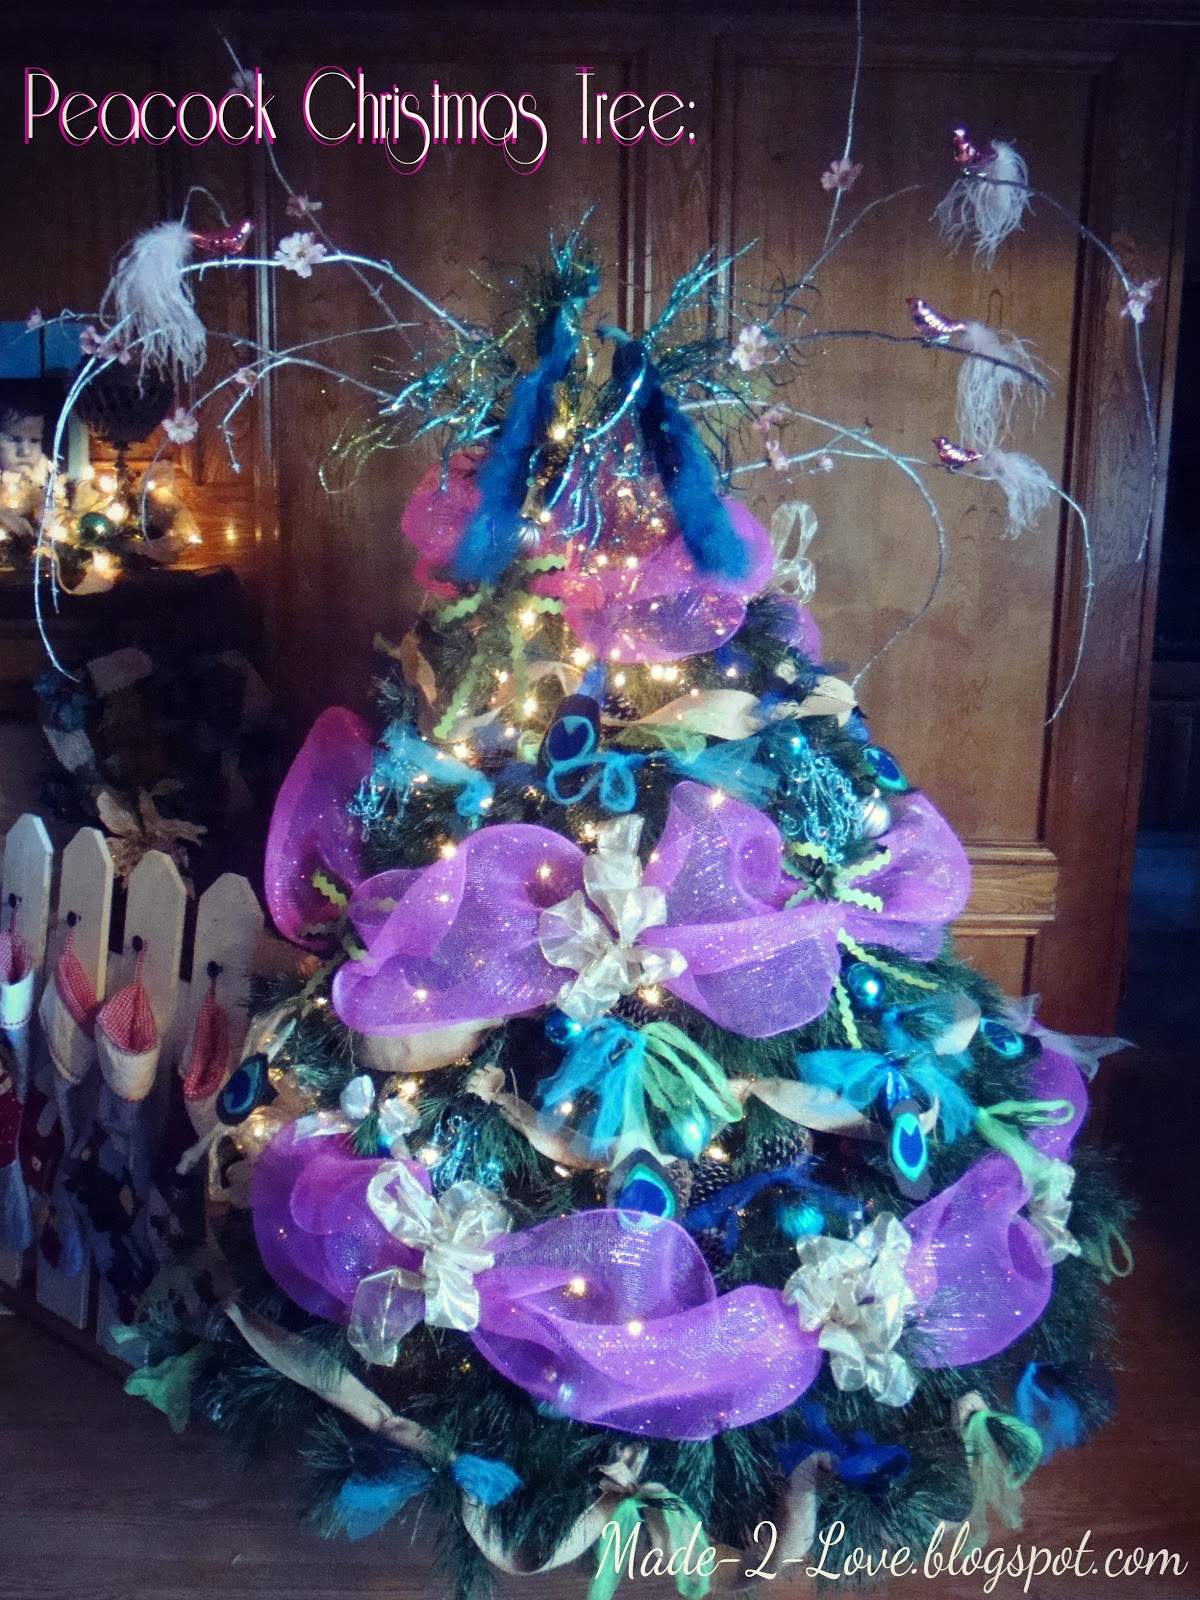 you can check out the stocking holder here - Peacock Christmas Tree